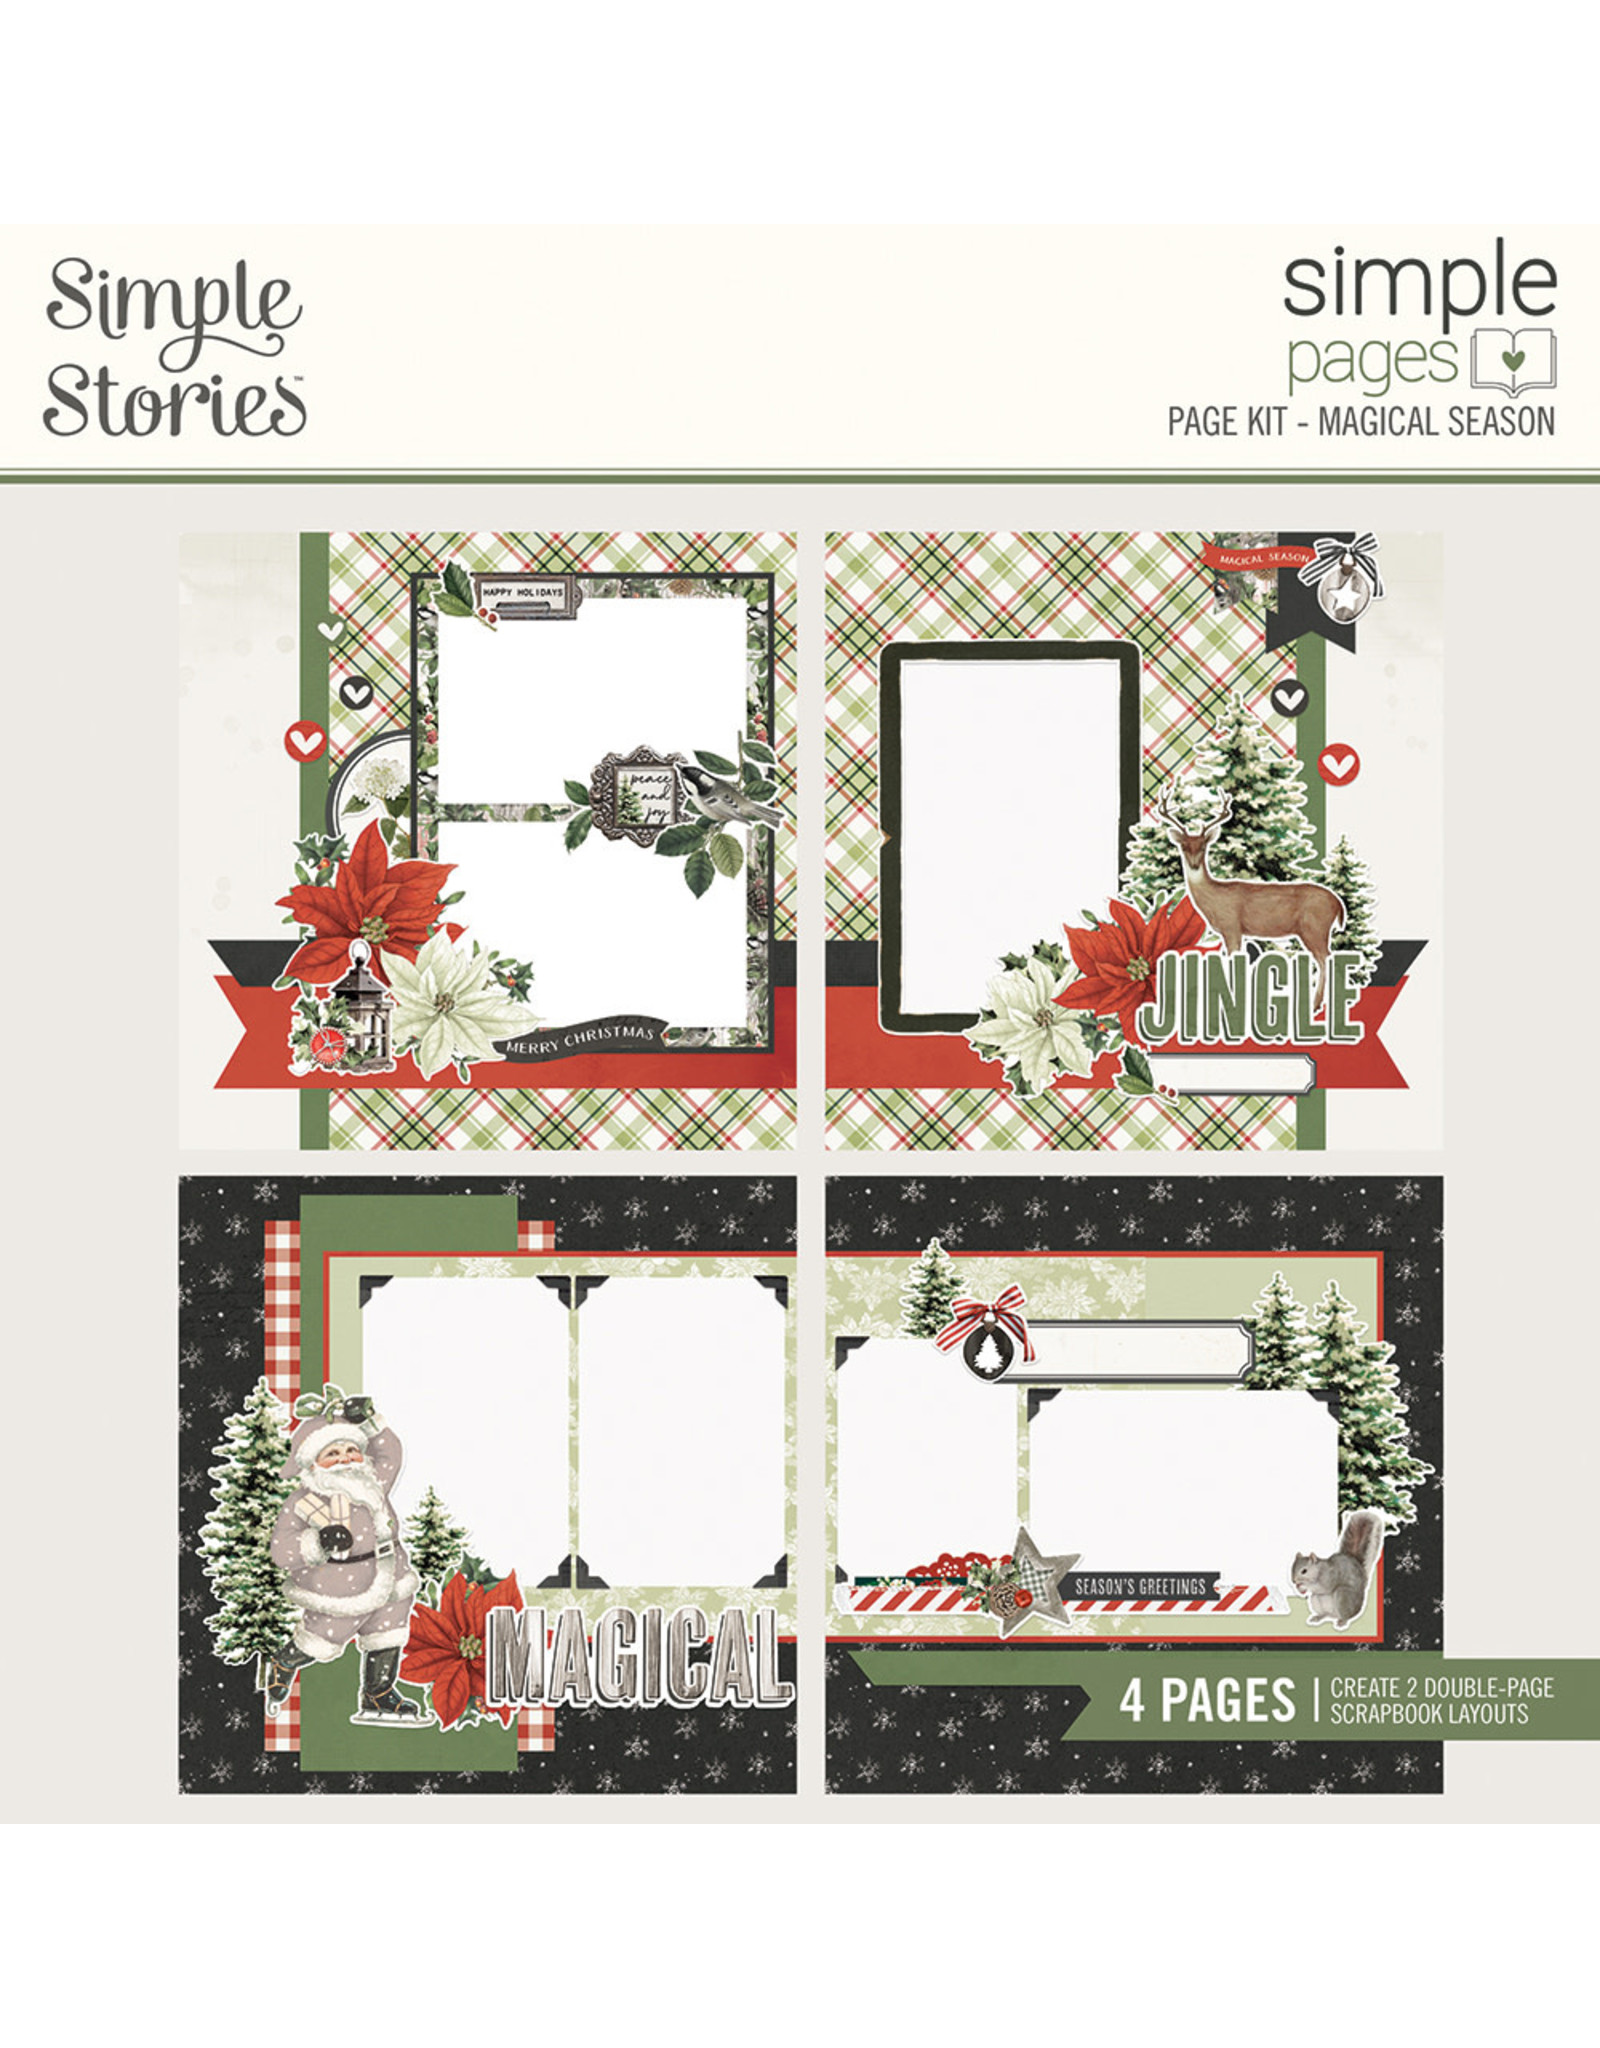 Simple Stories Simple Pages Kit - Magical Season